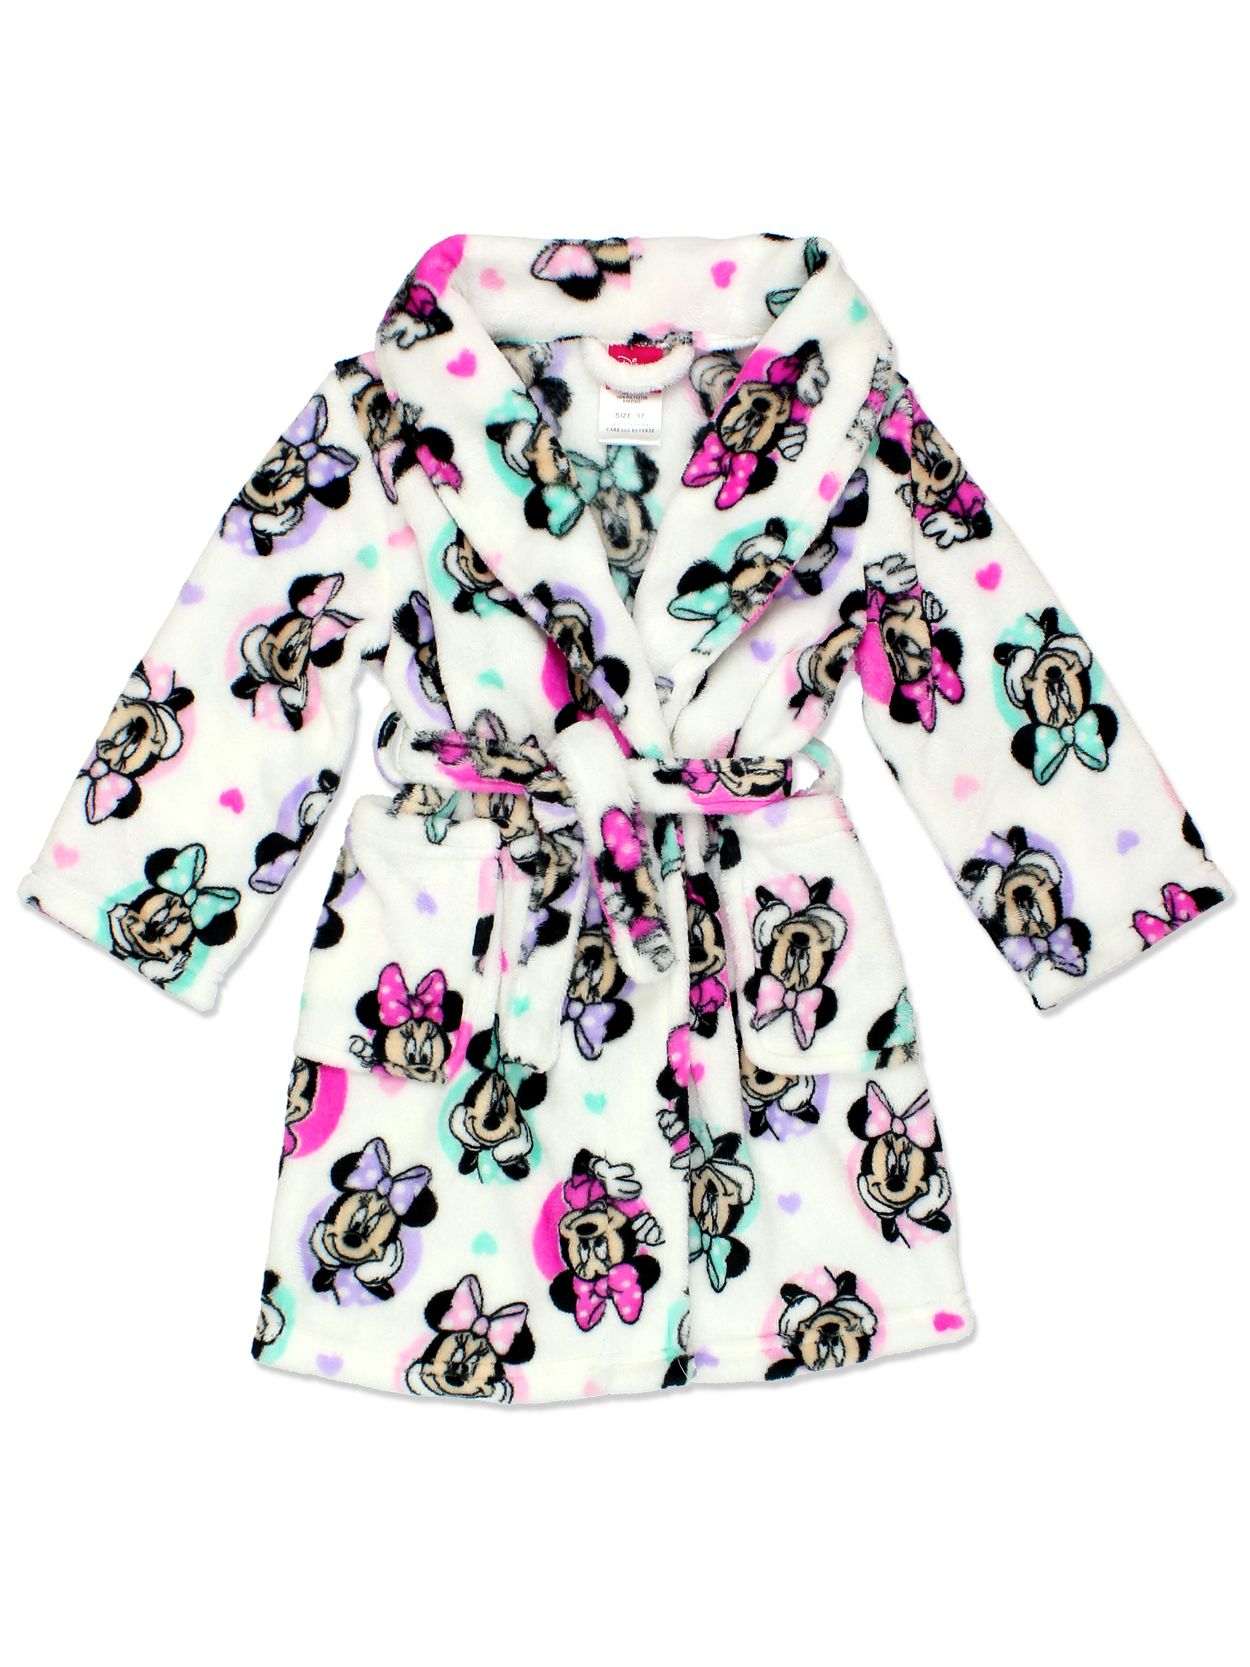 Minnie Mouse Girls Plush Fleece Bathrobe Robe (Toddler Little Kid Big Kid)  Get ready for bed in this adorable c35783a78